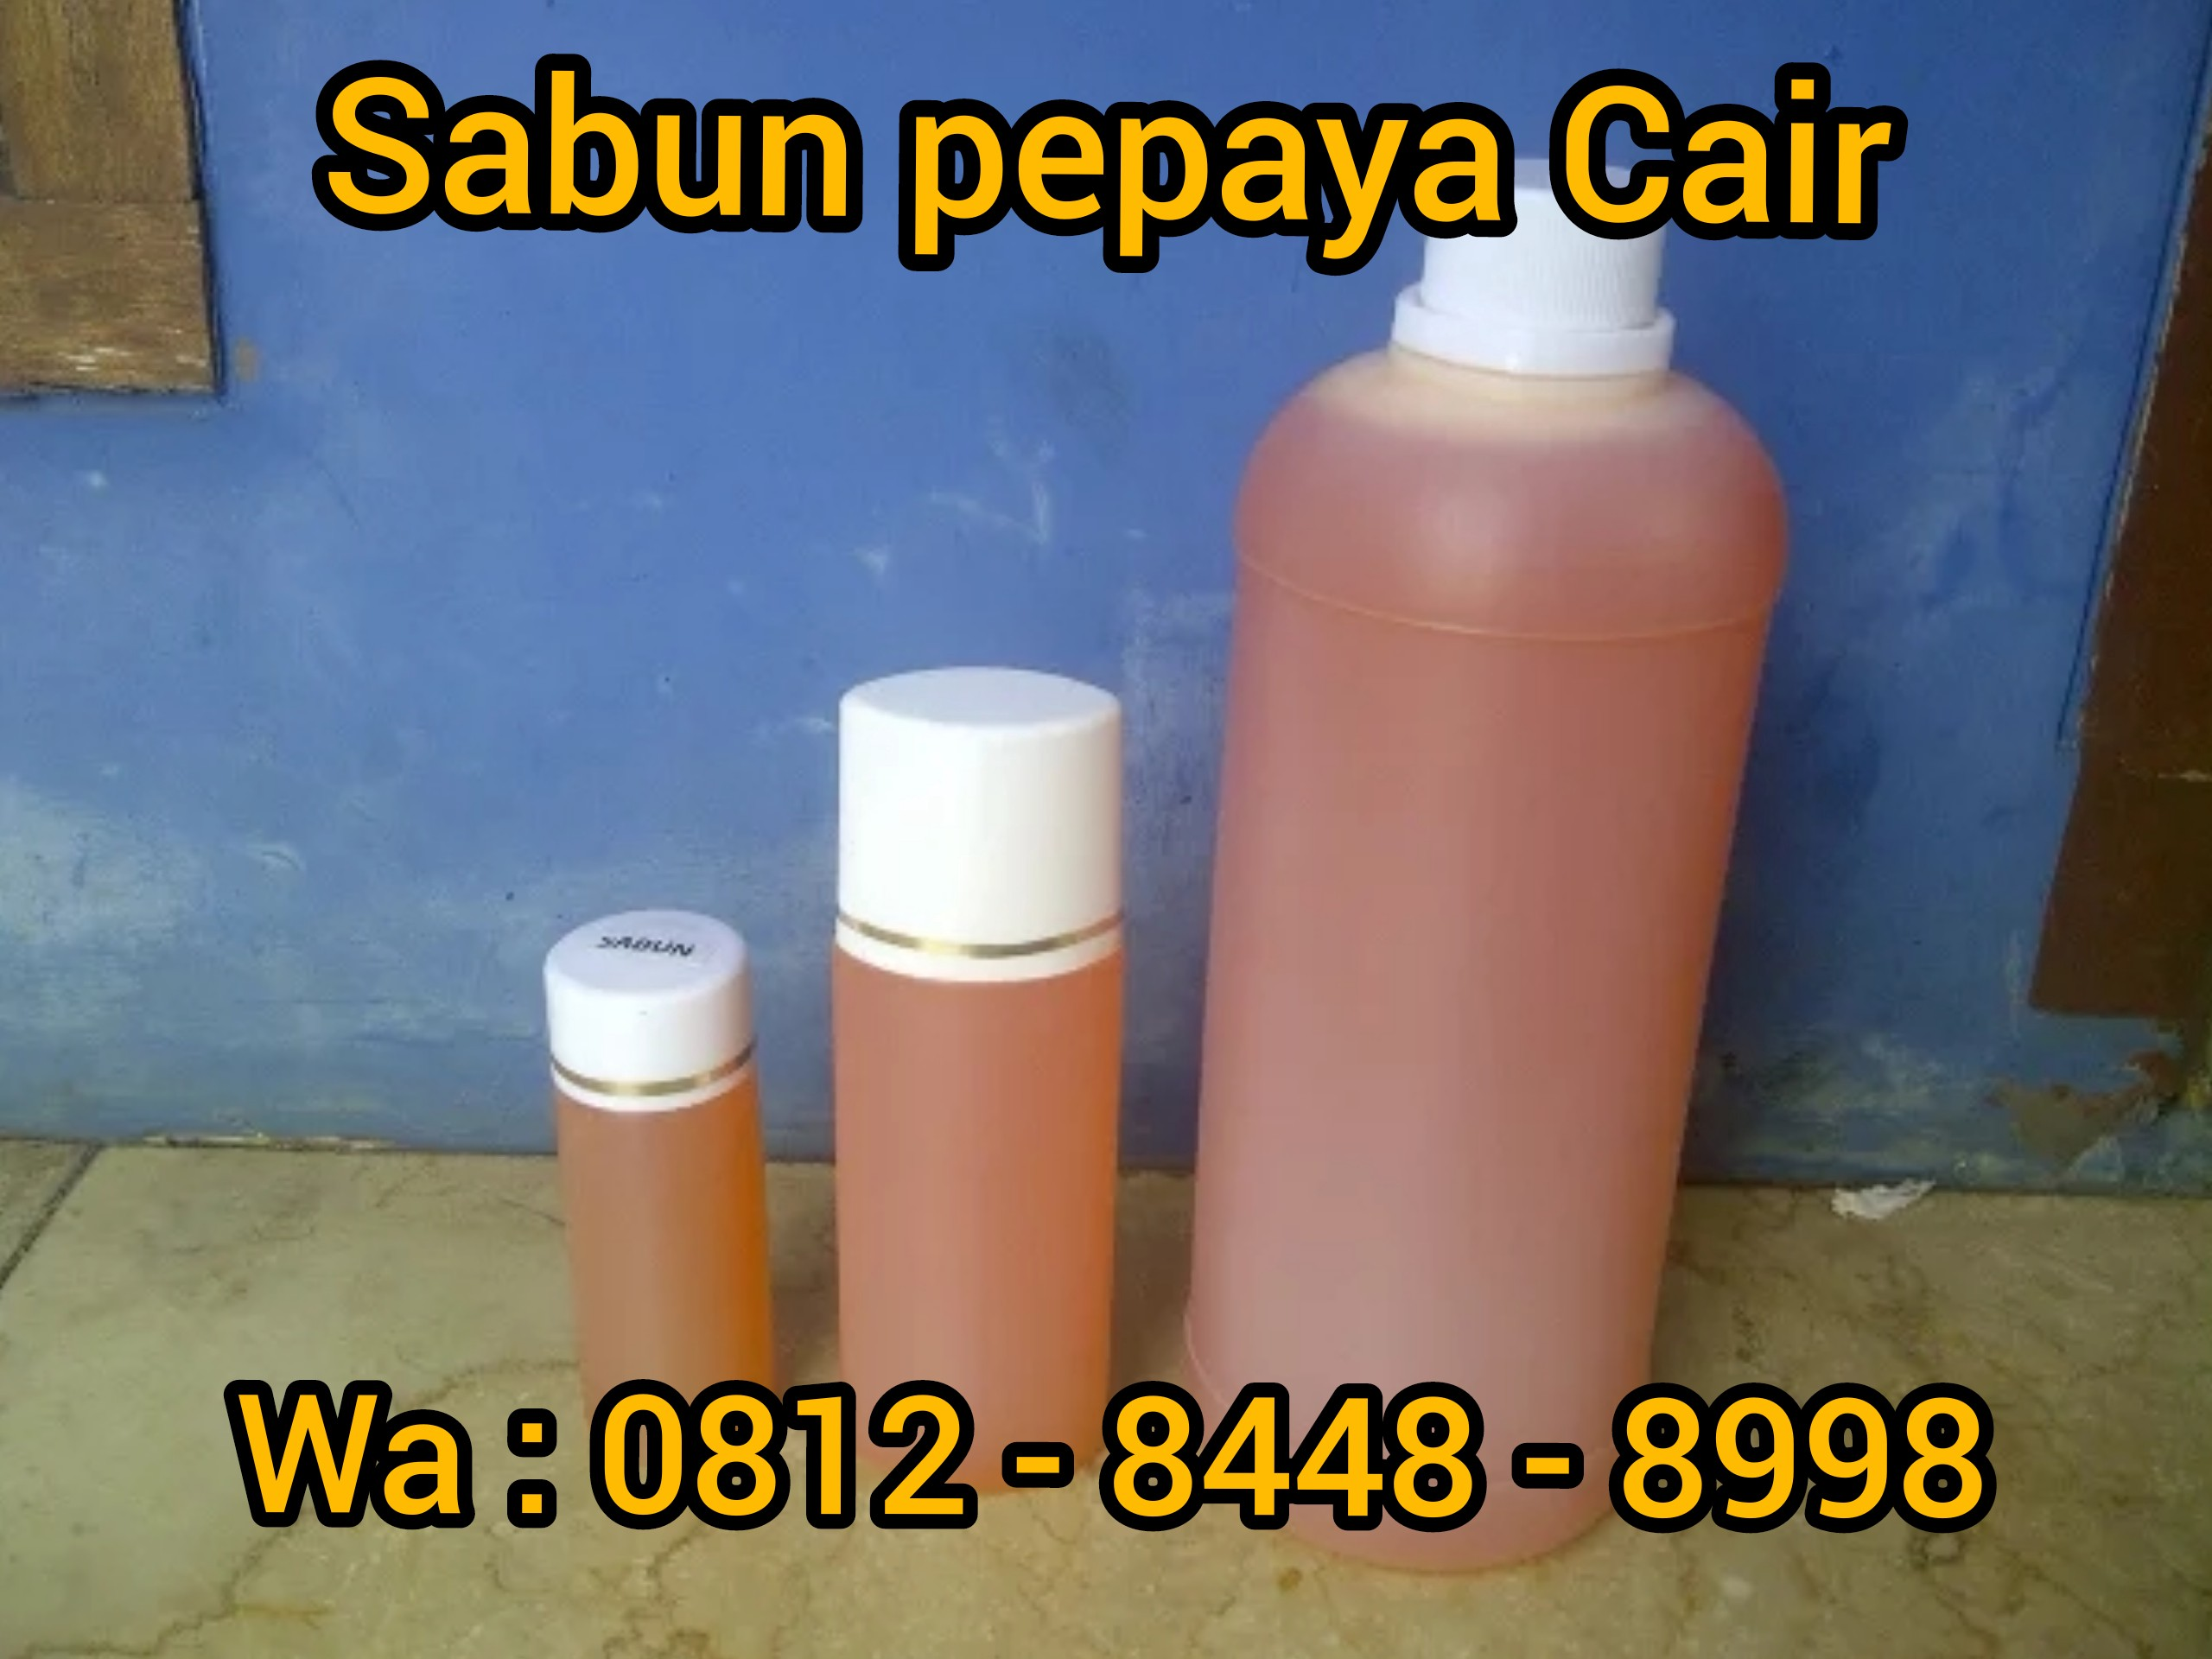 Wa Call Tsel 0812 8448 8998 Jual Sabun Cair Pepaya Di Makassar By Cream Hn Asli Medium